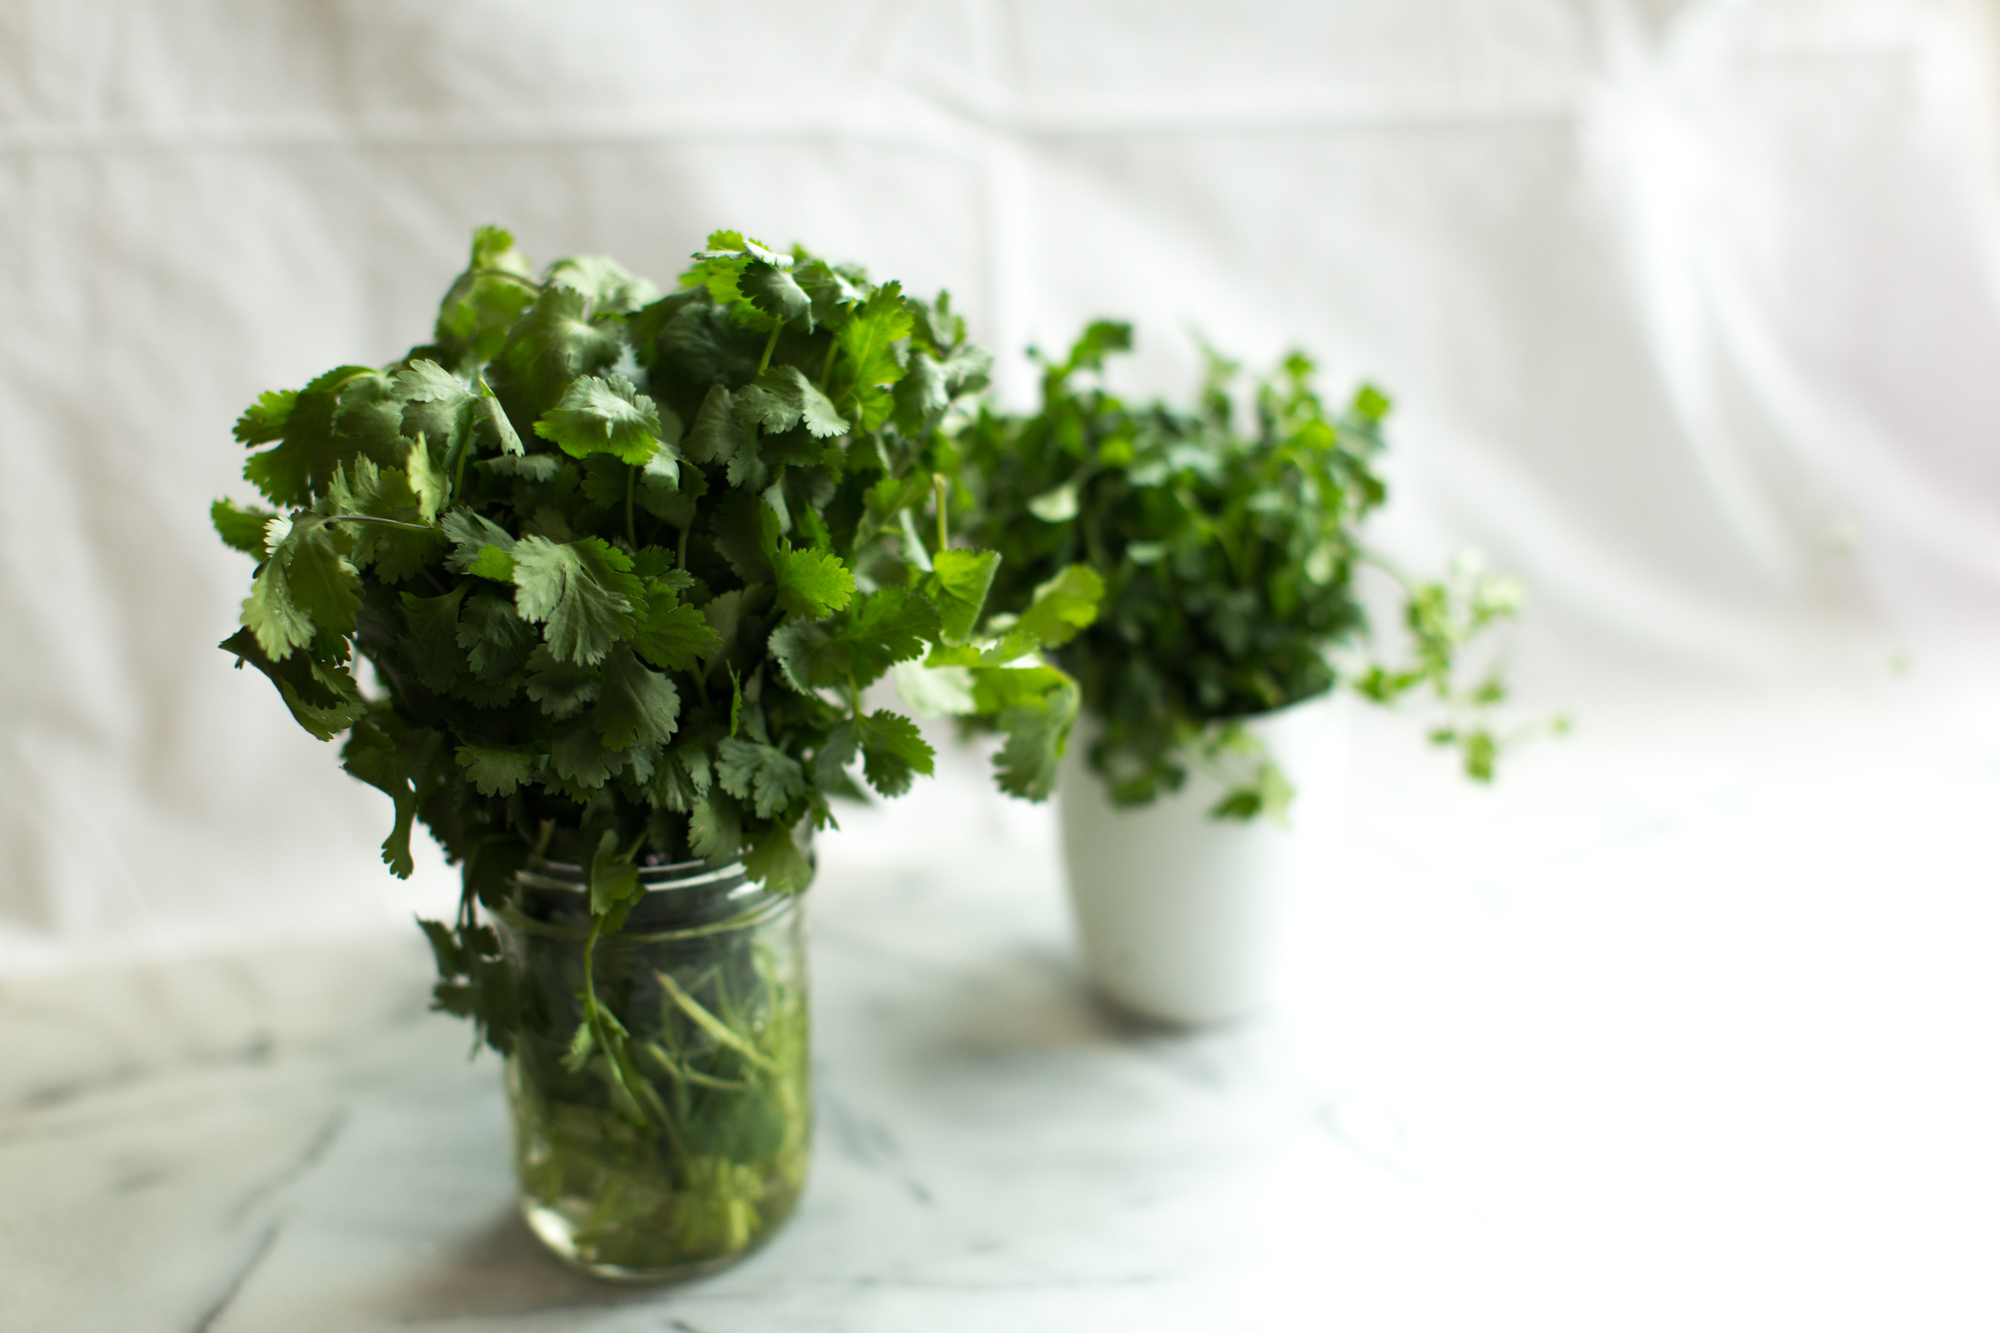 tips for keeping herbs fresh